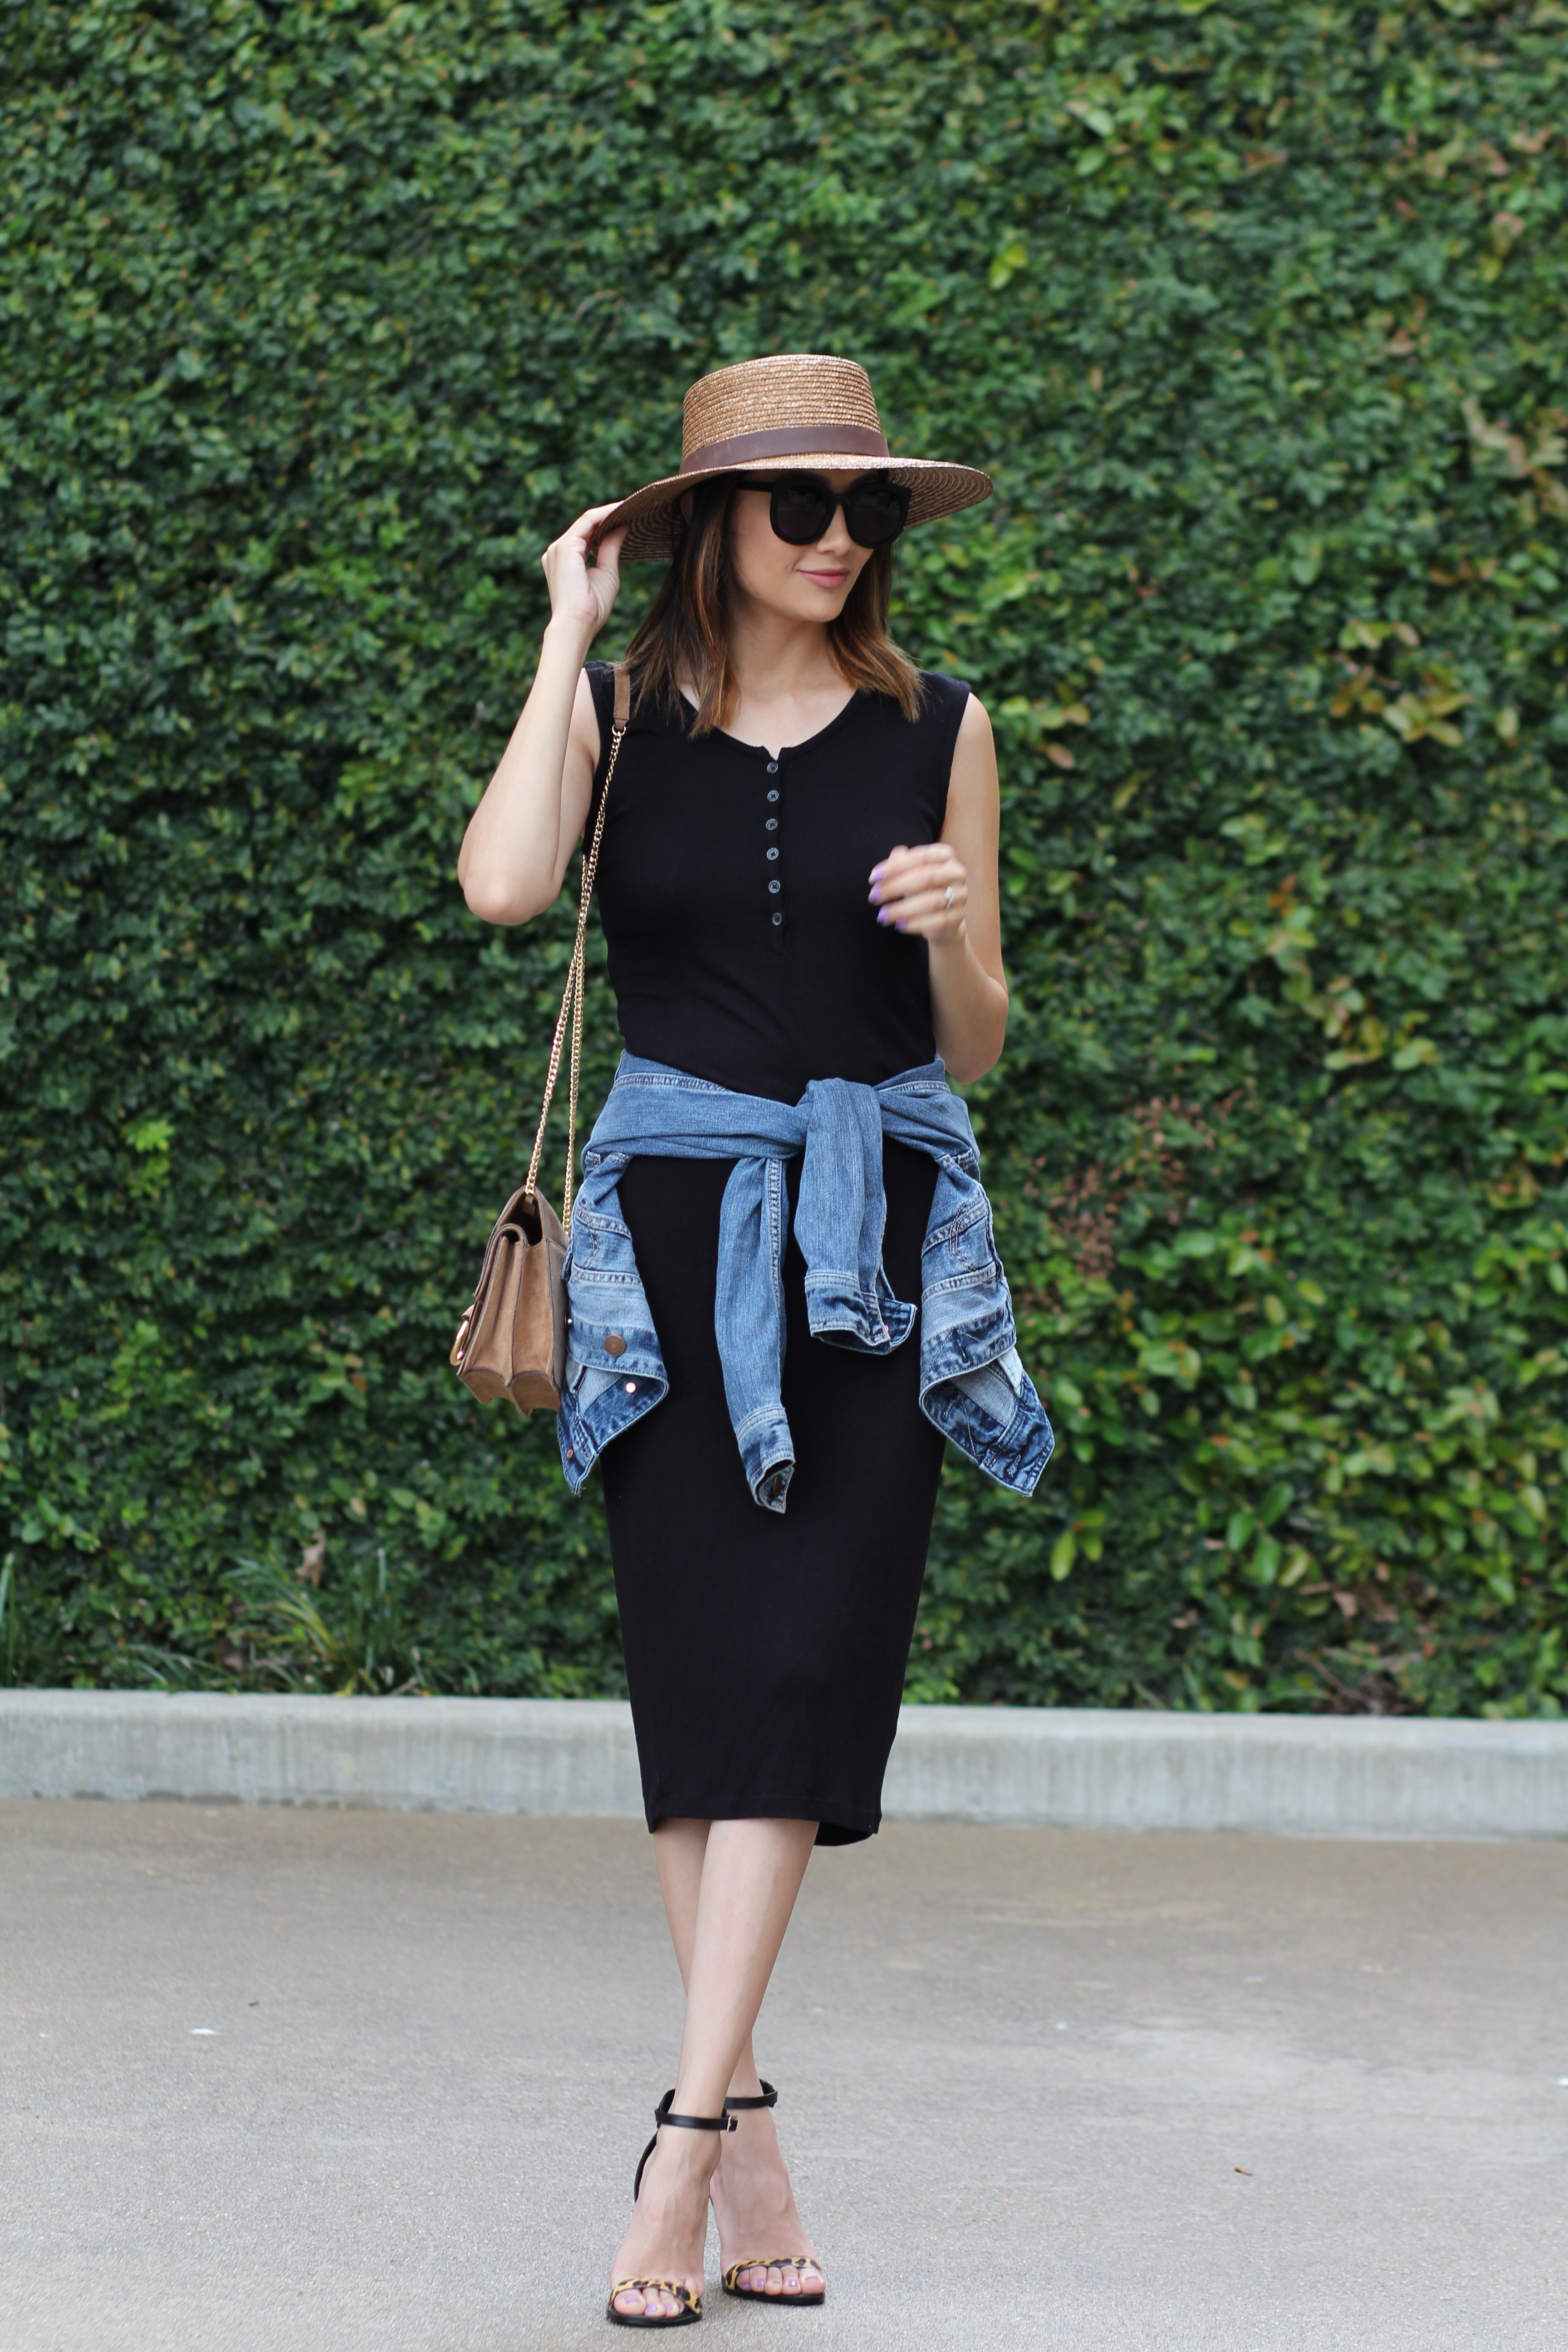 Summer Chic | Little Black Dress | Boater Hat